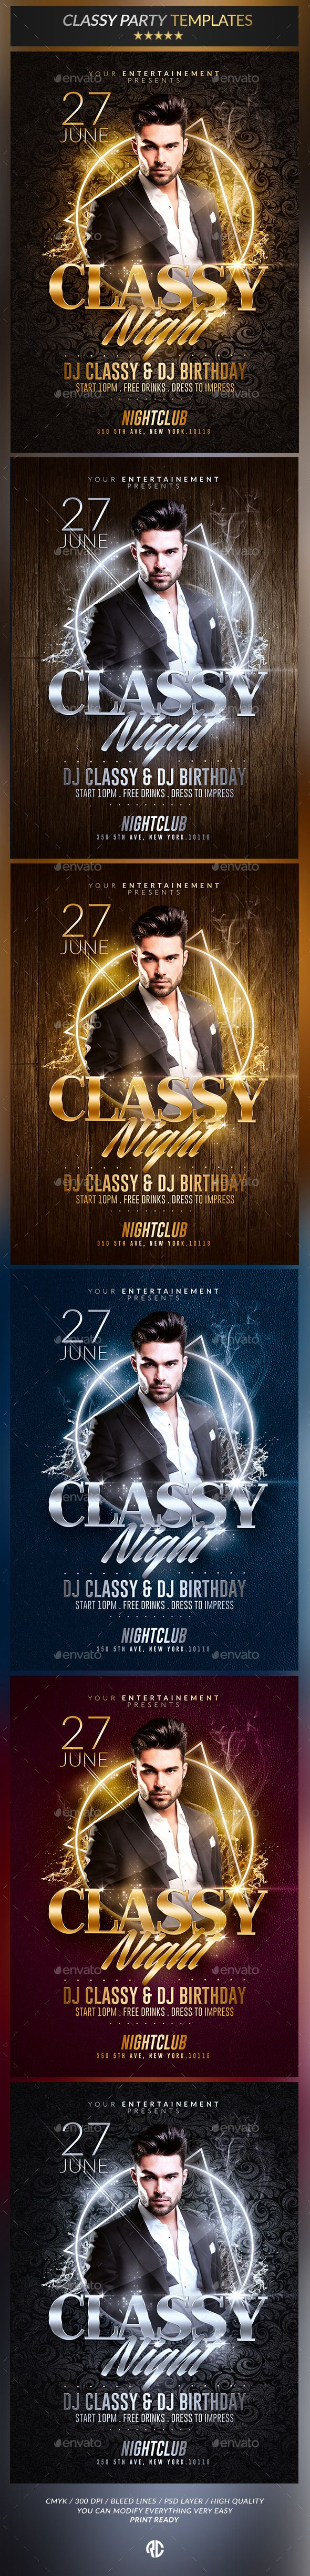 Classy Night Party | Psd Flyer Templates